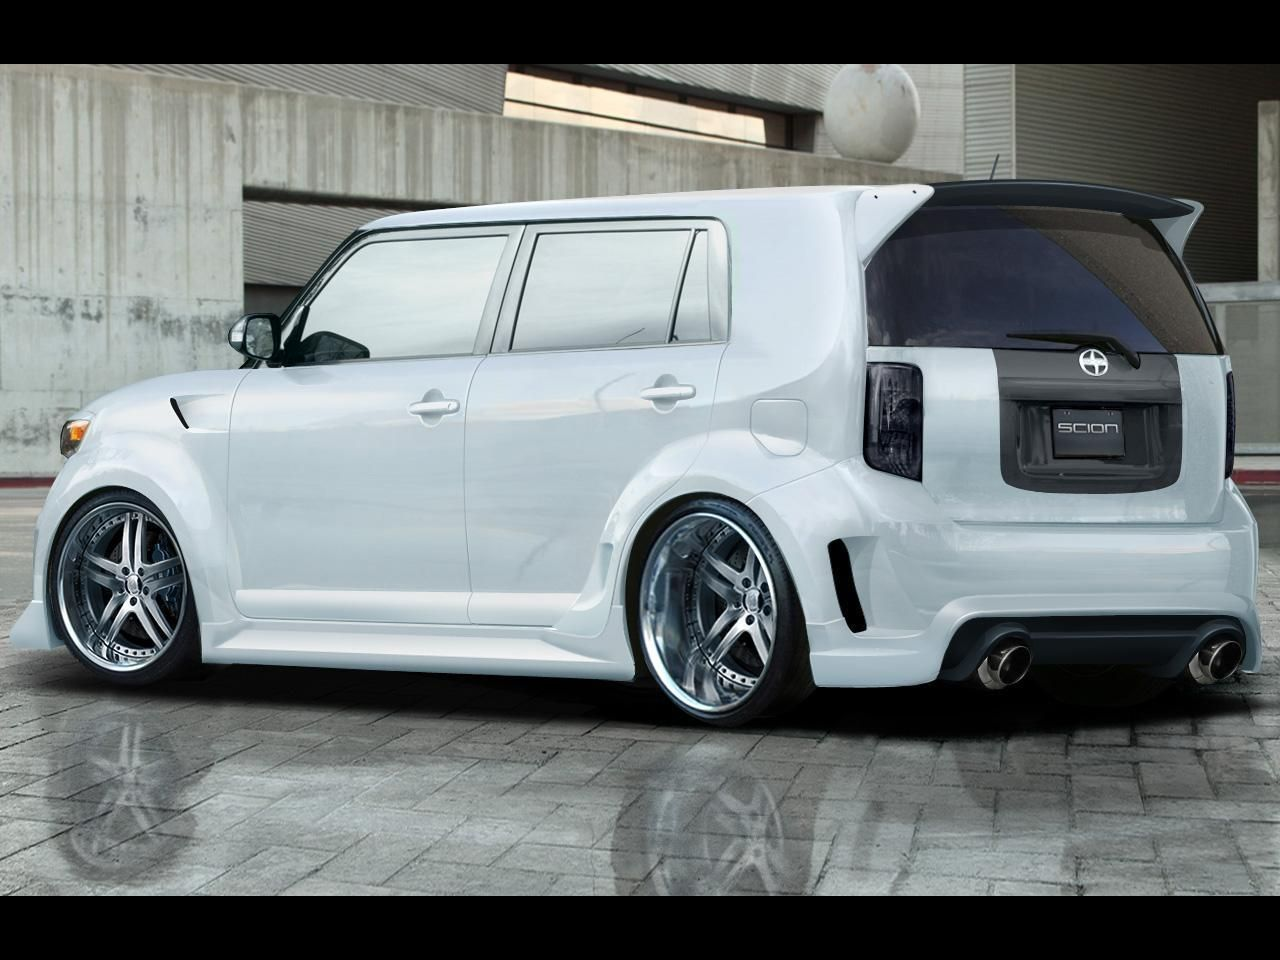 The second generation scion xb is styled as a 5 door version of the t2b concept unveiled at the 2006 new york auto show description from vehiclear